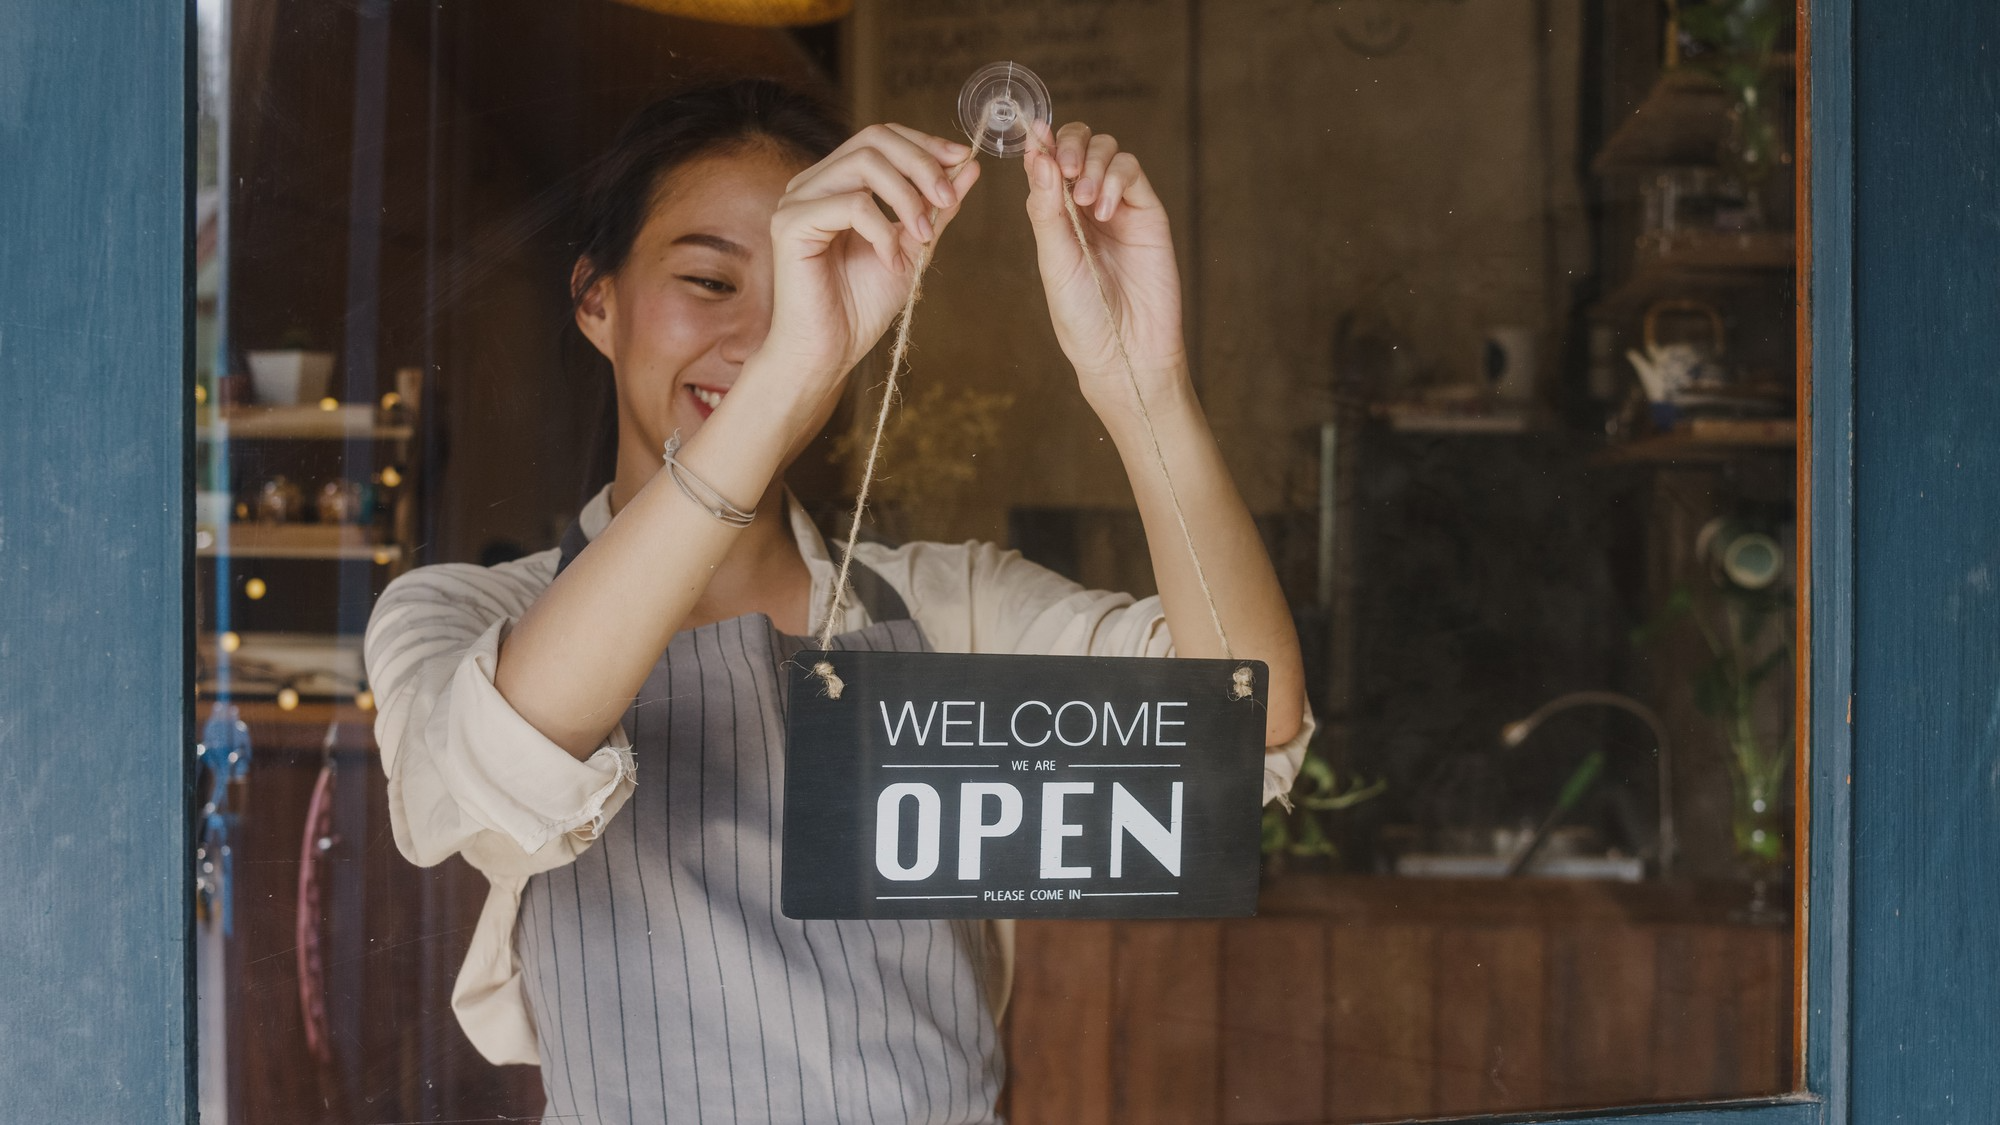 young woman placing open sign in restaurant